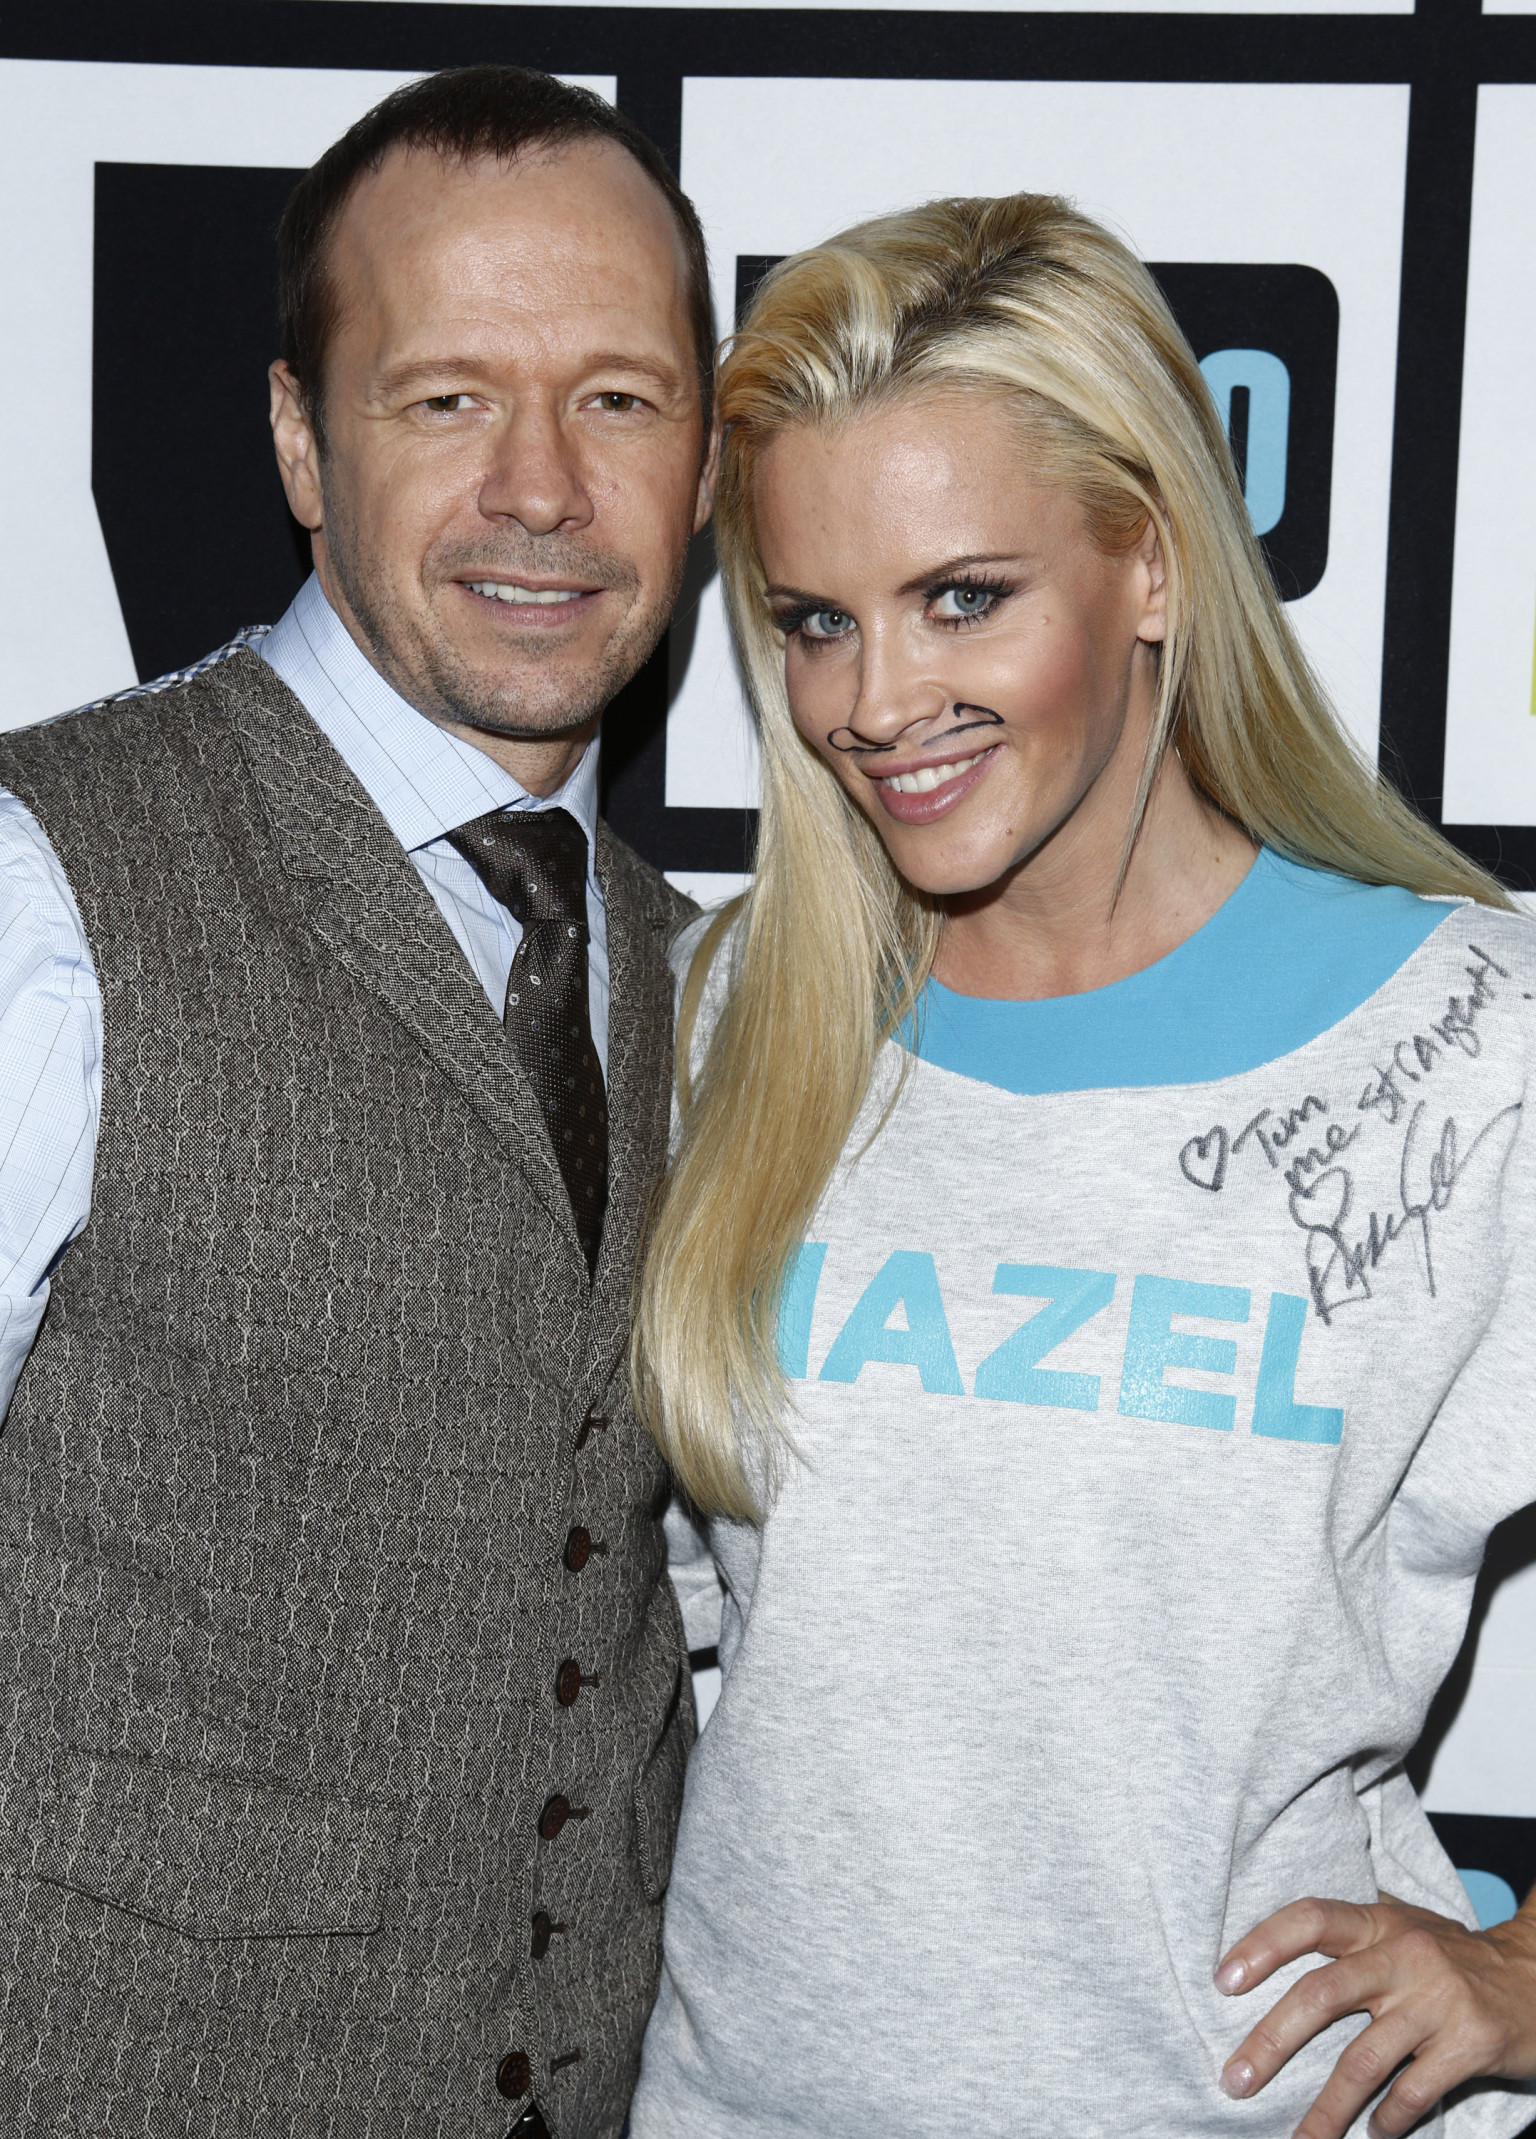 donnie dating jenny mccarthy Jenny mccarthy announced her engagement to donnie wahlberg on the view the couple have been dating since last summer mccarthy was previously unsure if she'd marry again.